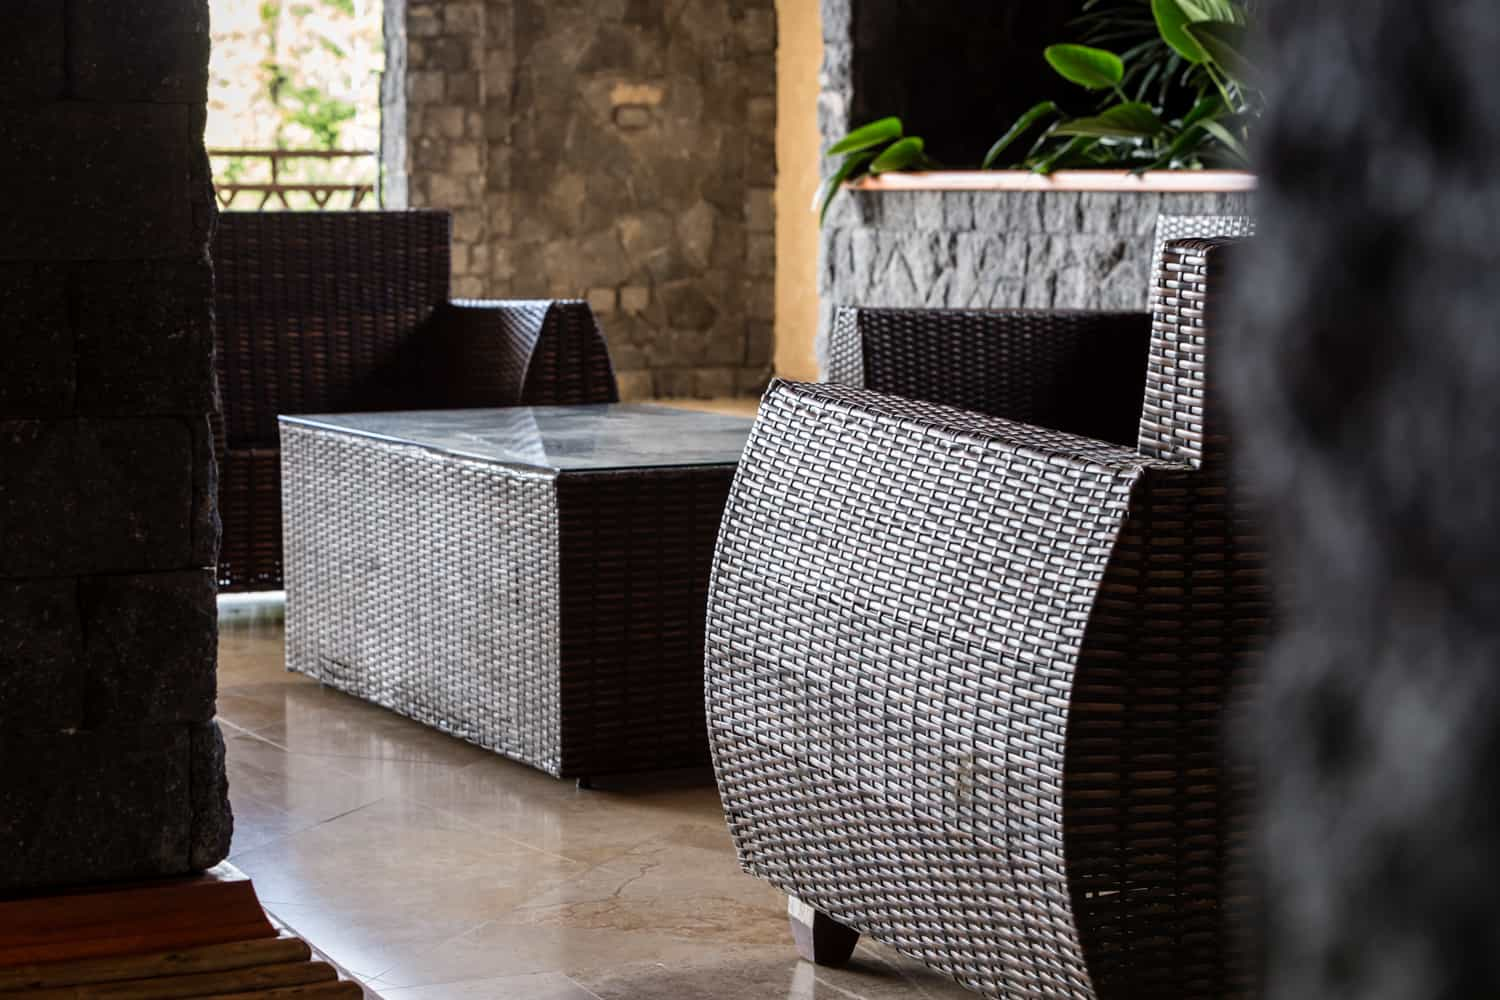 Furniture for wedding guests for your ceremony on the Aracari Terrace at The Springs in Arenal.